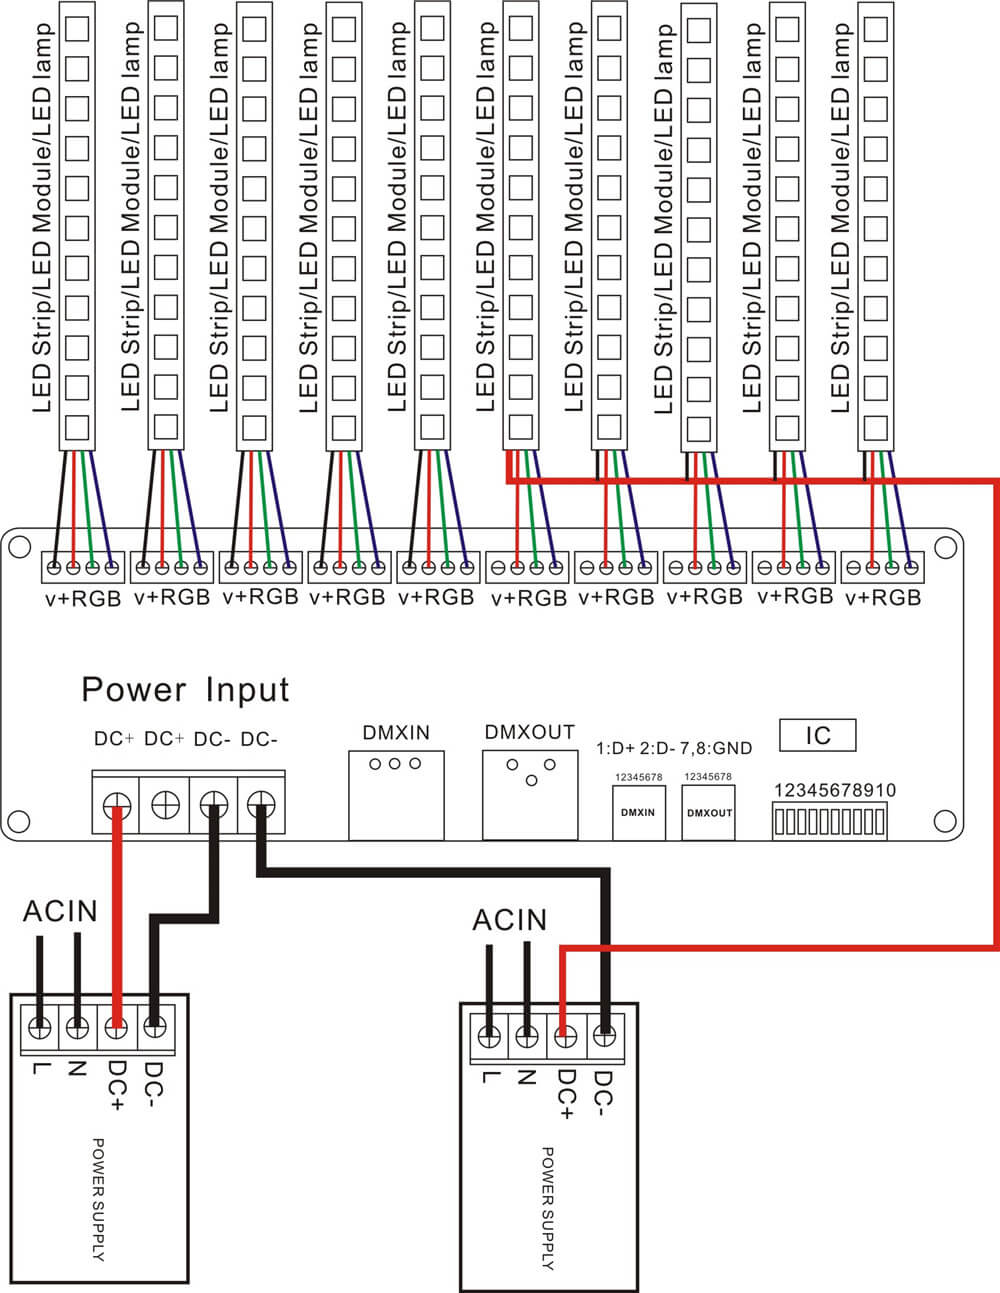 30 Channel Dmx Decoder With Rj45 And Xlr Plug 27 Dmx512 Power Over Ethernet Wiring Diagram Note The If You Need To Use A Computer Control We Proposed Purchase Our Usb Controllerwe Test Products Based On This Companys Controllerpls Buy